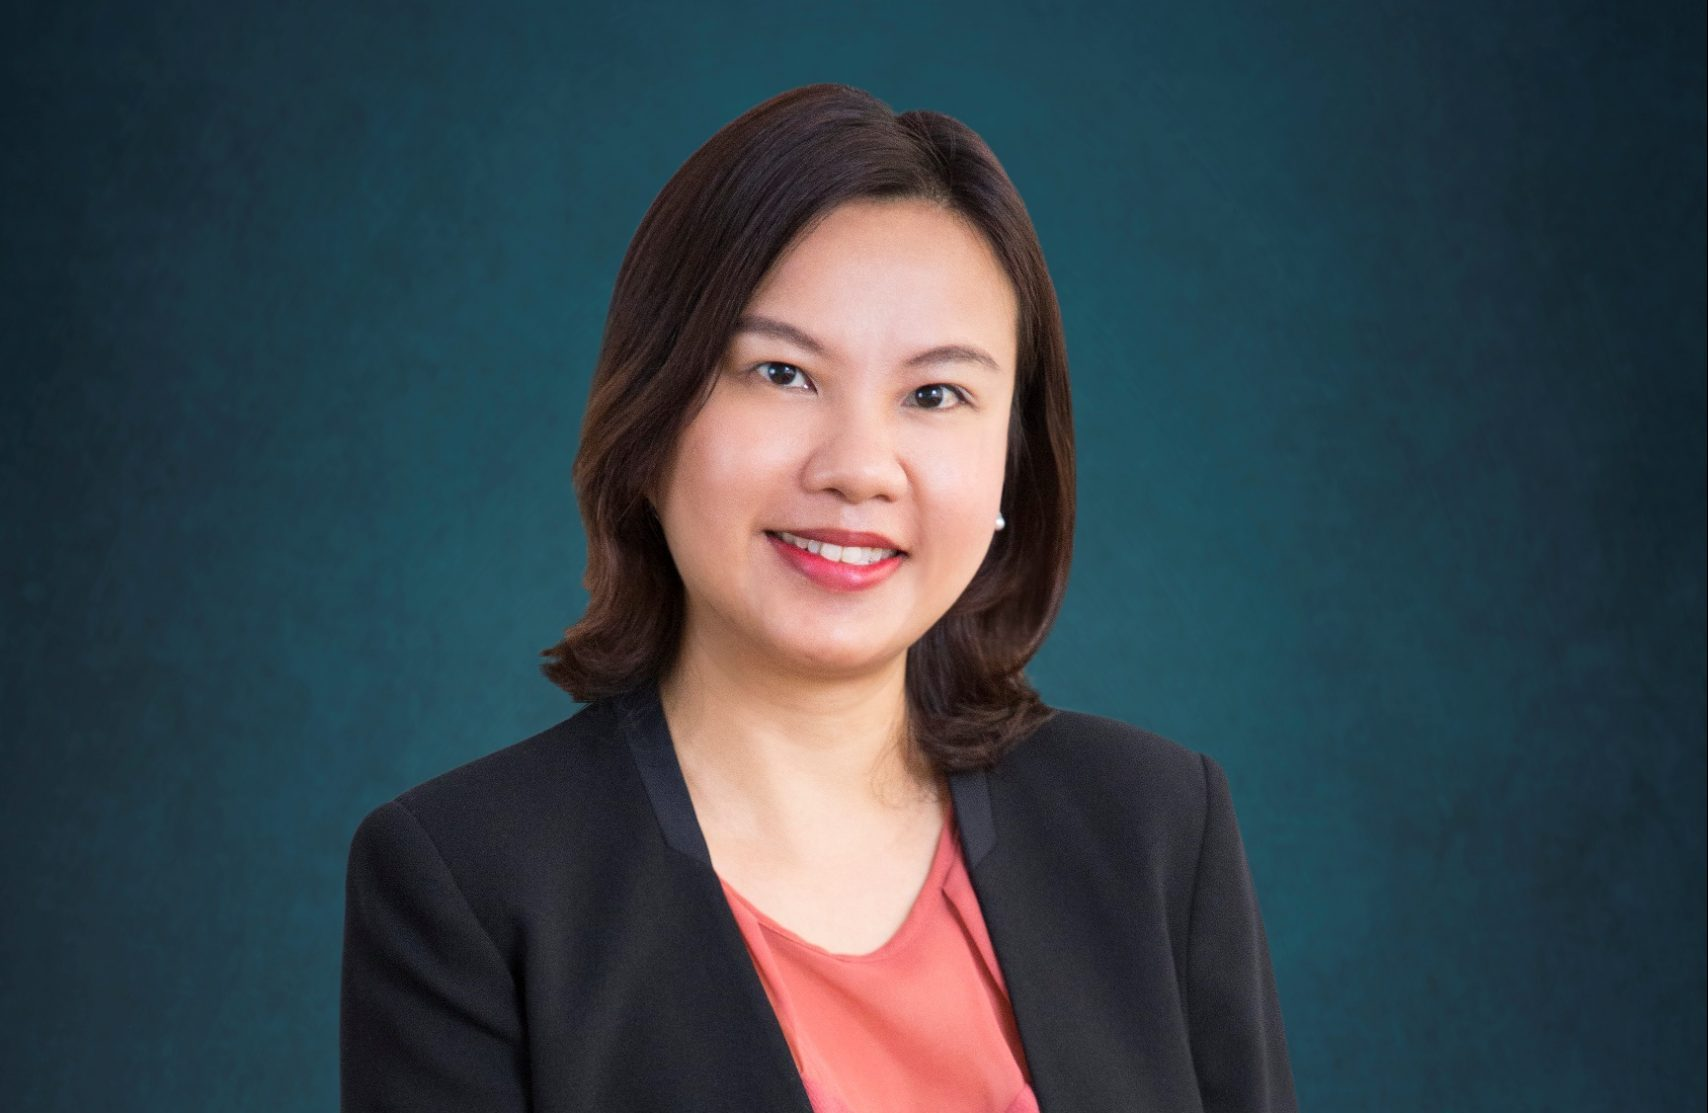 Hui Min Ng, Director, Portfolio Manager, Equities, Manulife Investment Management